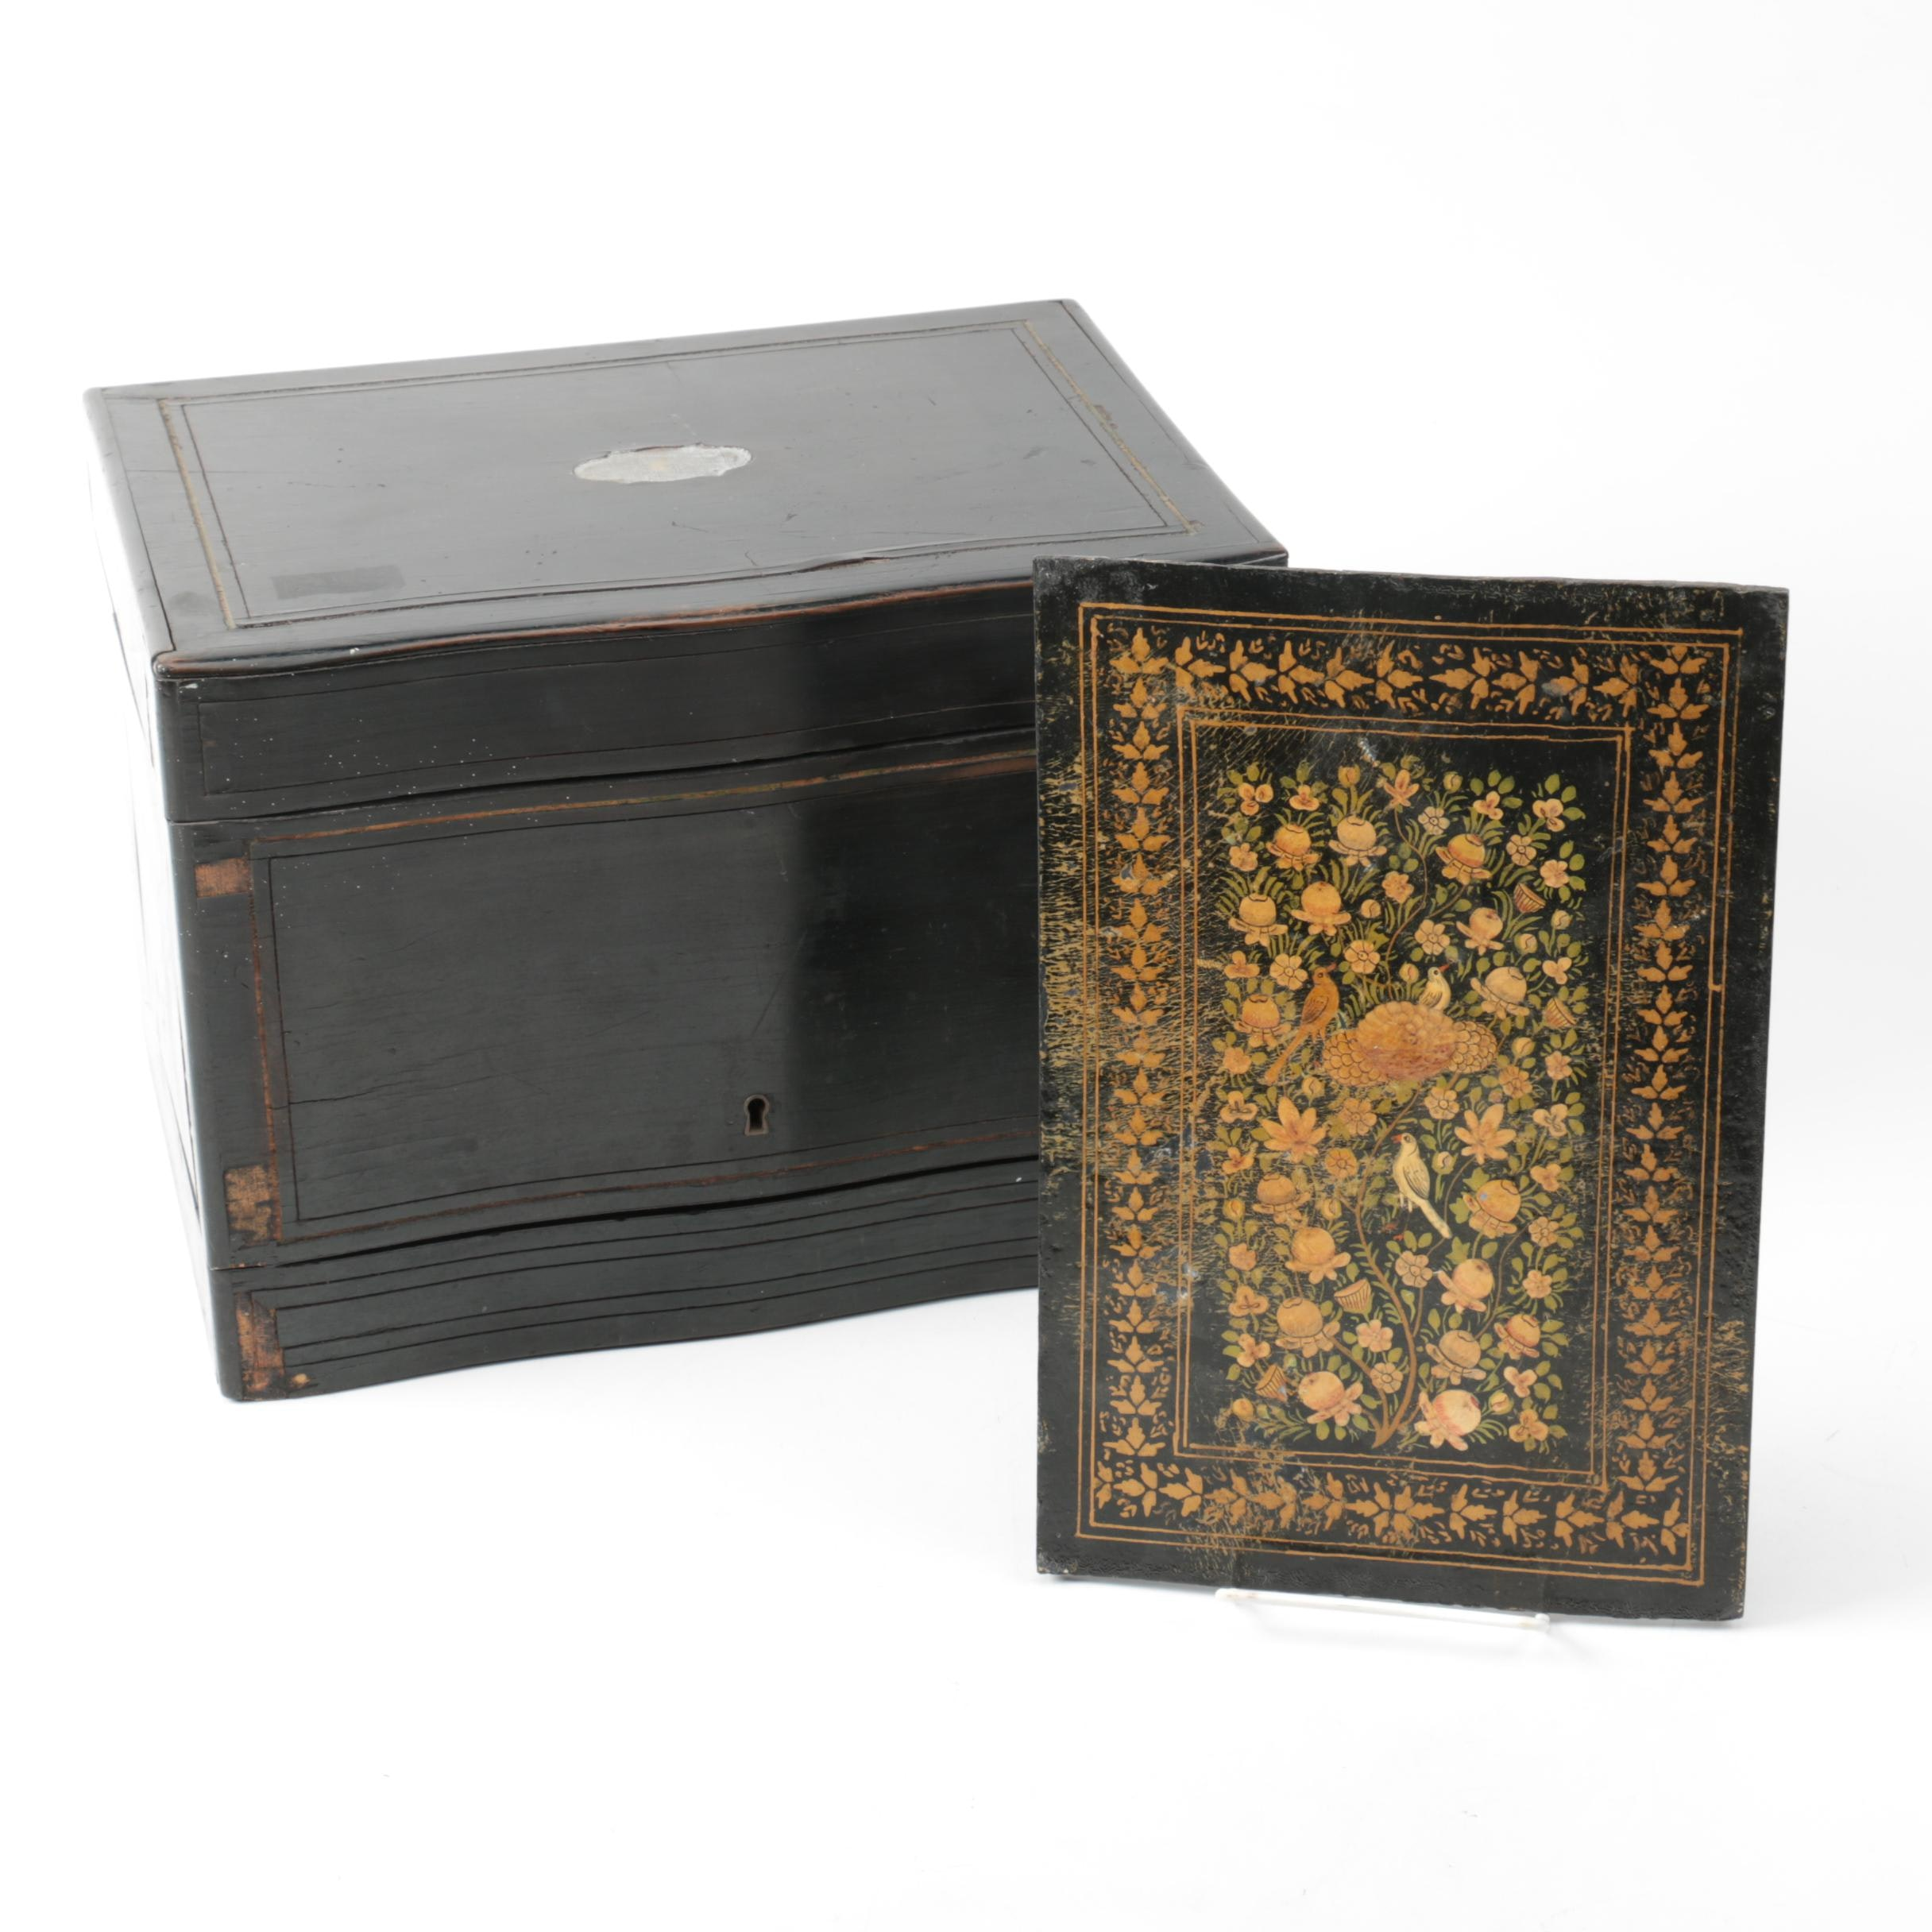 Antique Cave à Liqueur Ebonized Wooden Box and Floral Panel